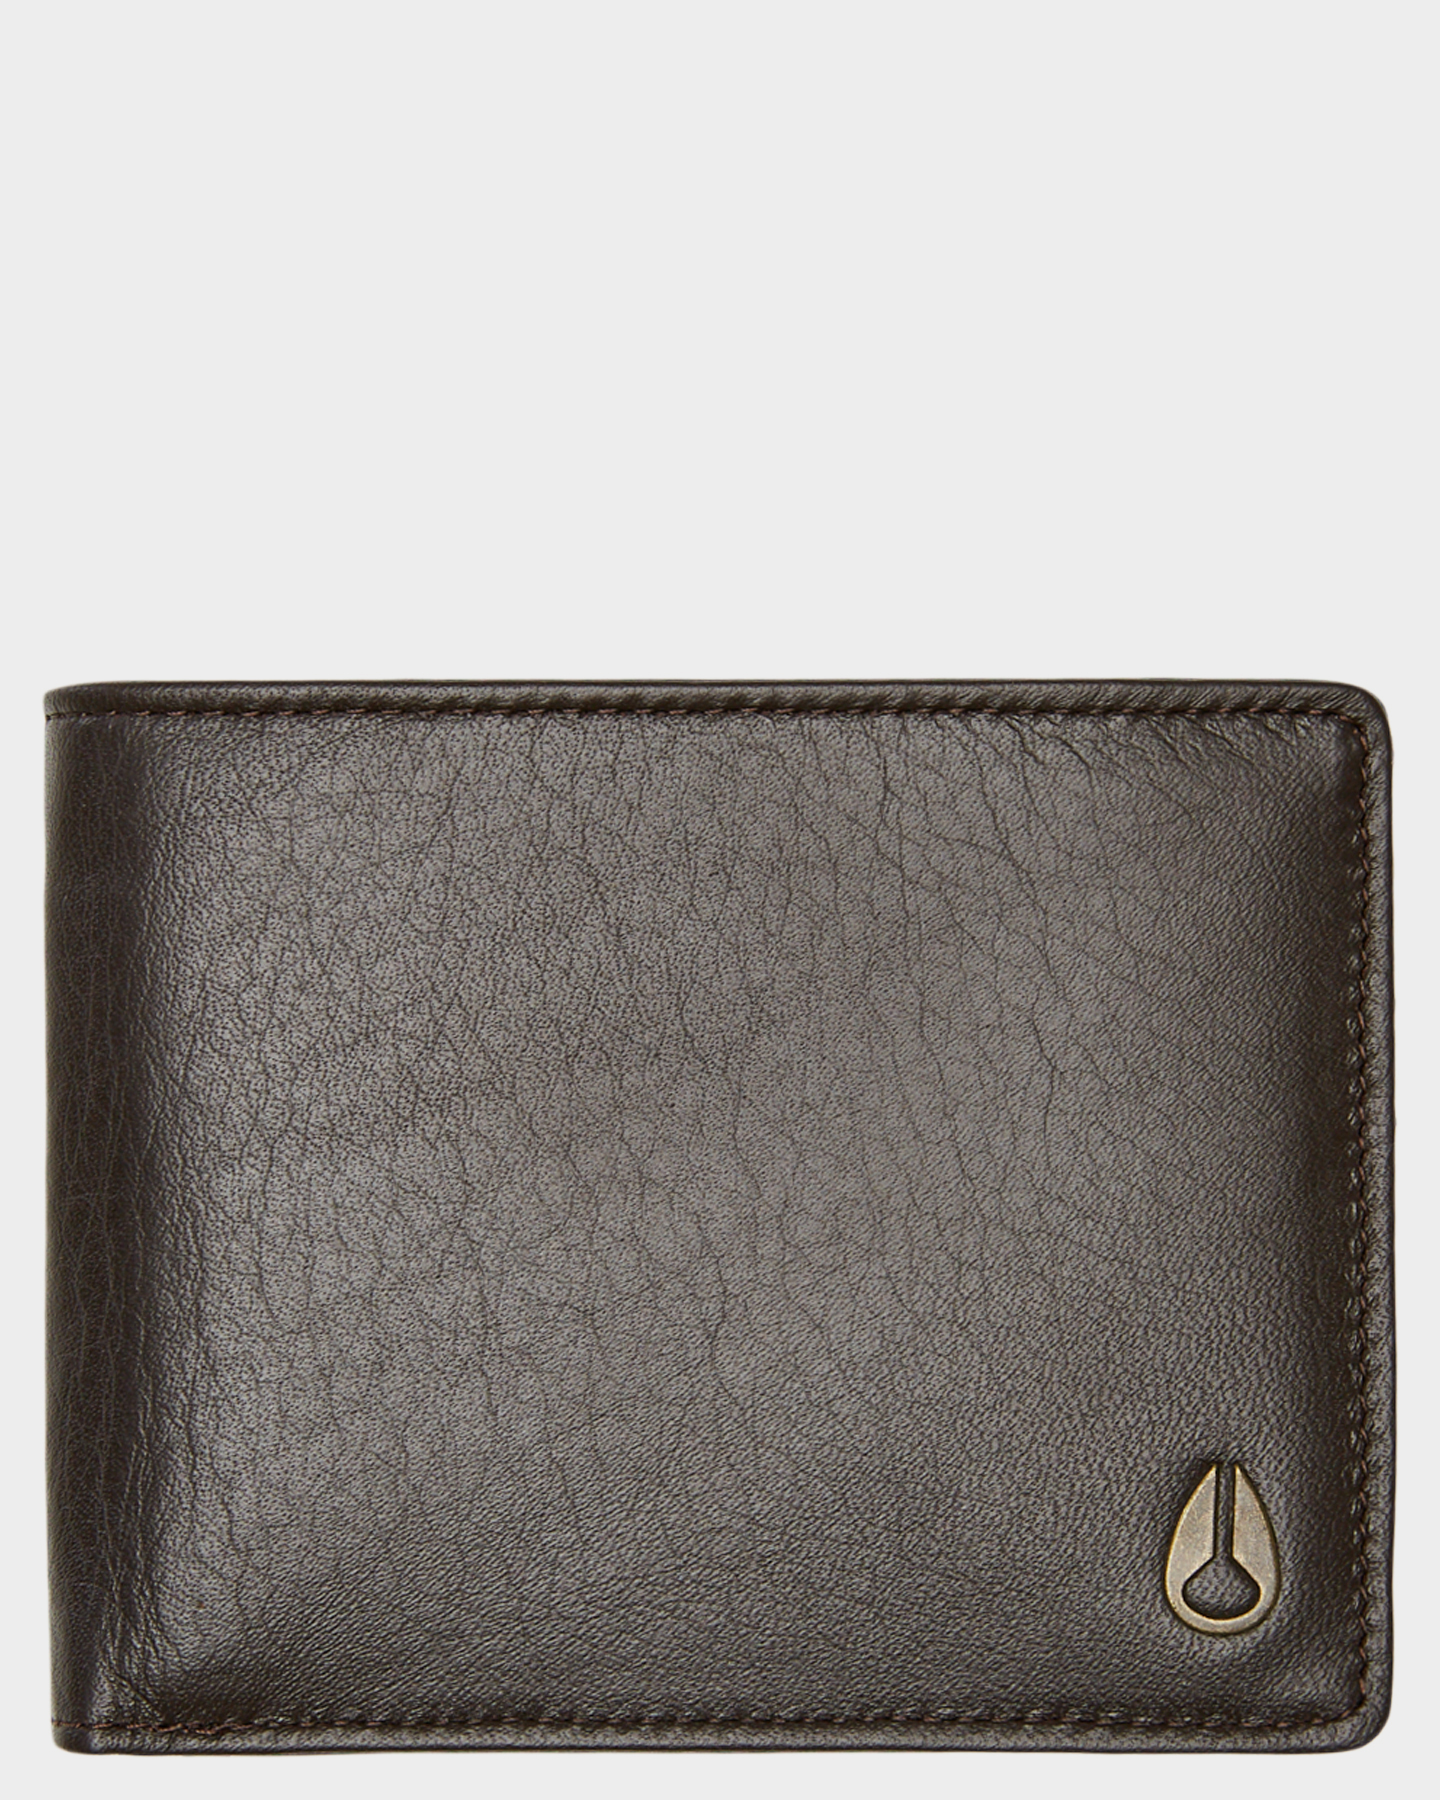 Nixon Pass Leather Wallet Brown